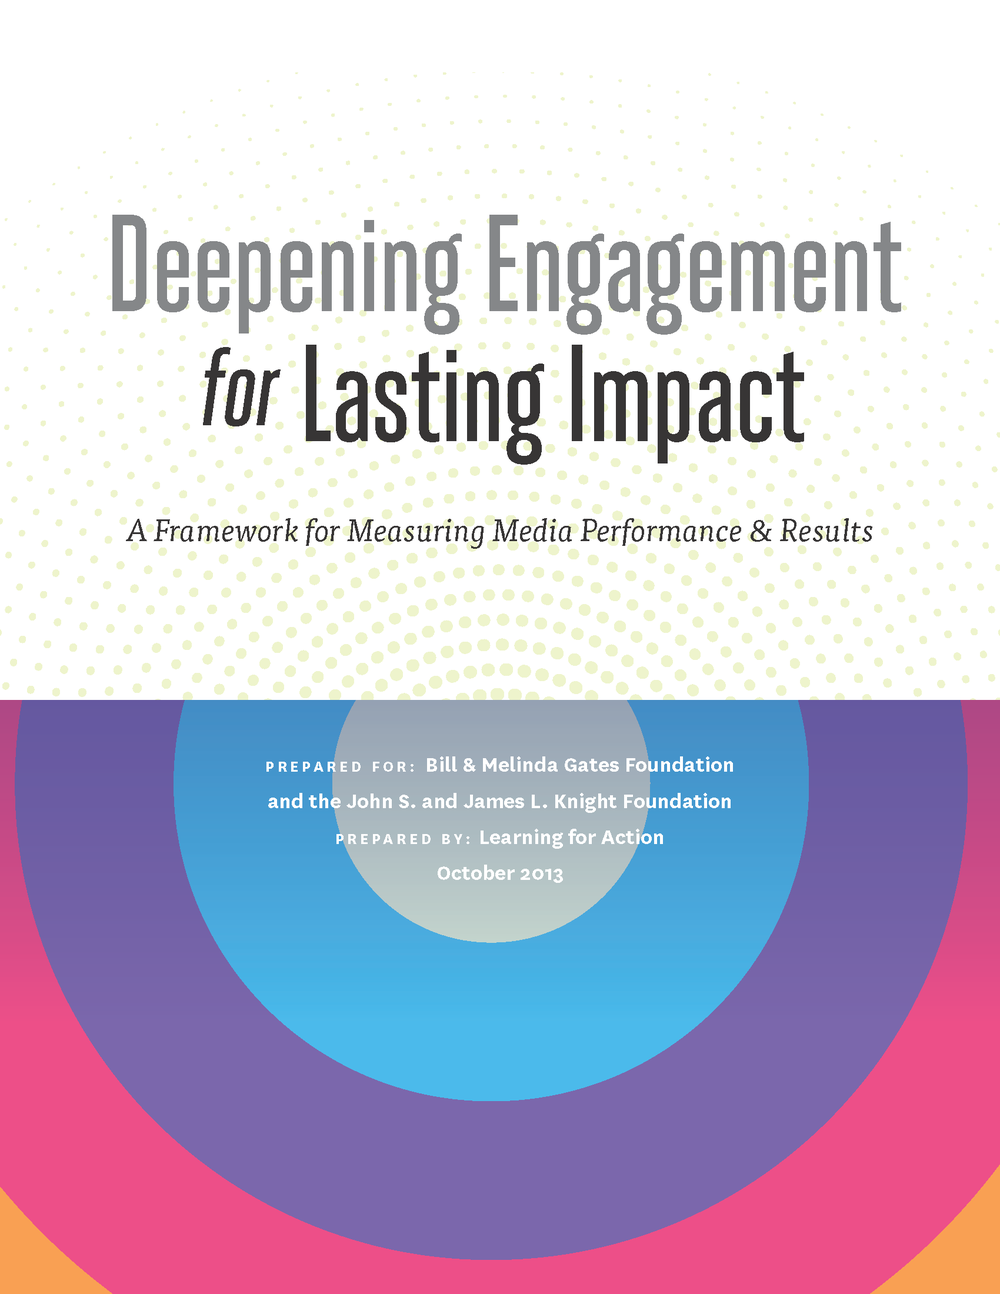 Check out the final product: A framework for measuring media performance and results